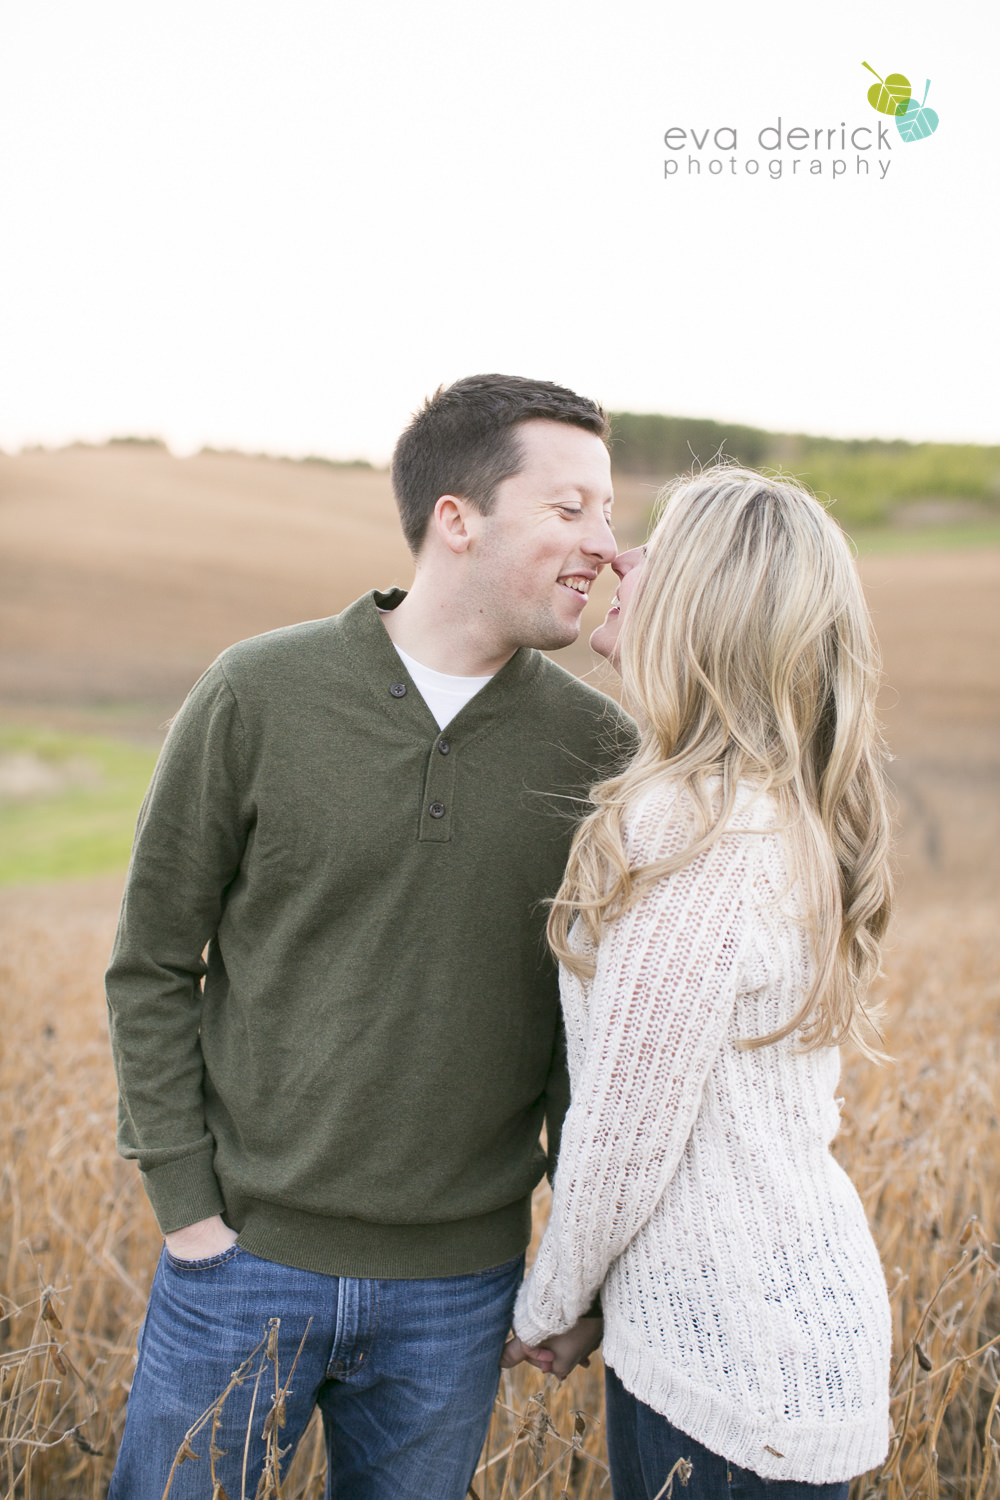 Albion-Hills-Photographer-Engagement-Session-Alanna-Matt-photography-by-Eva-Derrick-Photography-032.JPG